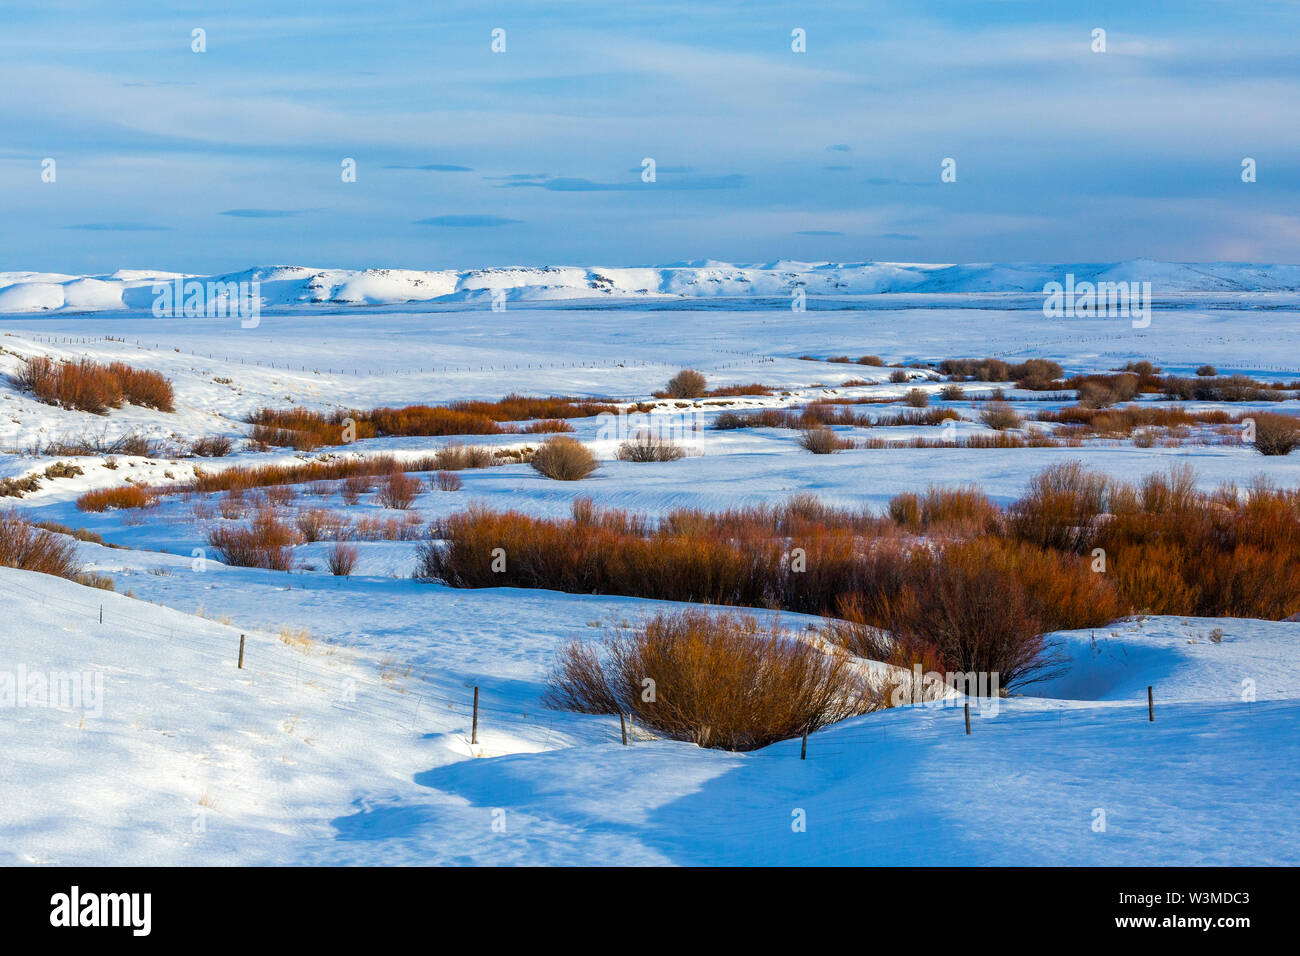 Bushes in snow field during winter in Fairfield, Idaho - Stock Image